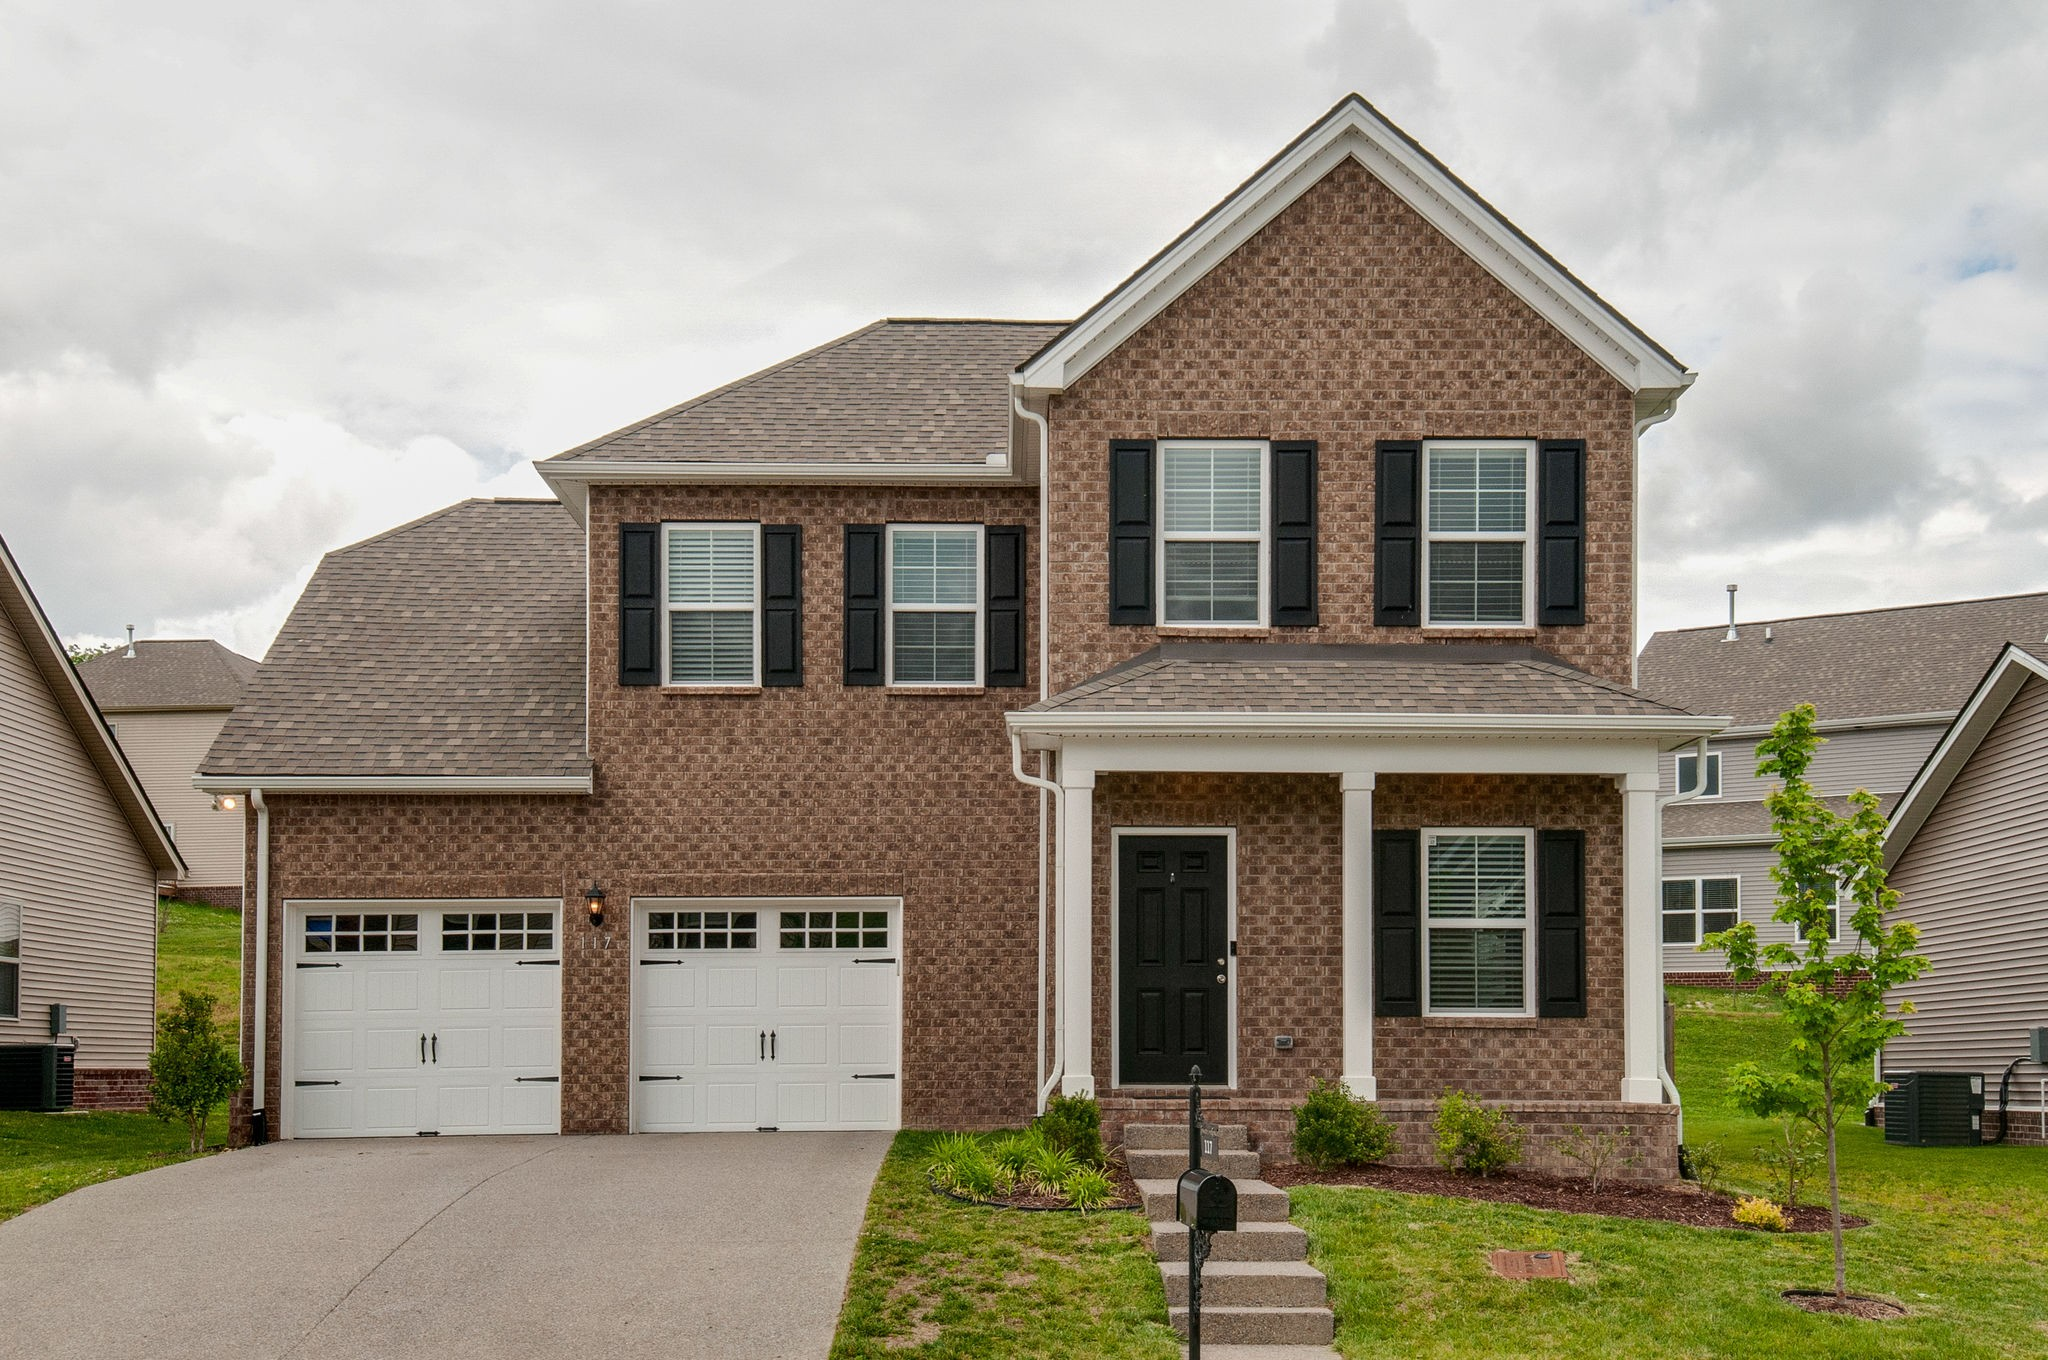 117 Lightwood Dr Property Photo - Antioch, TN real estate listing